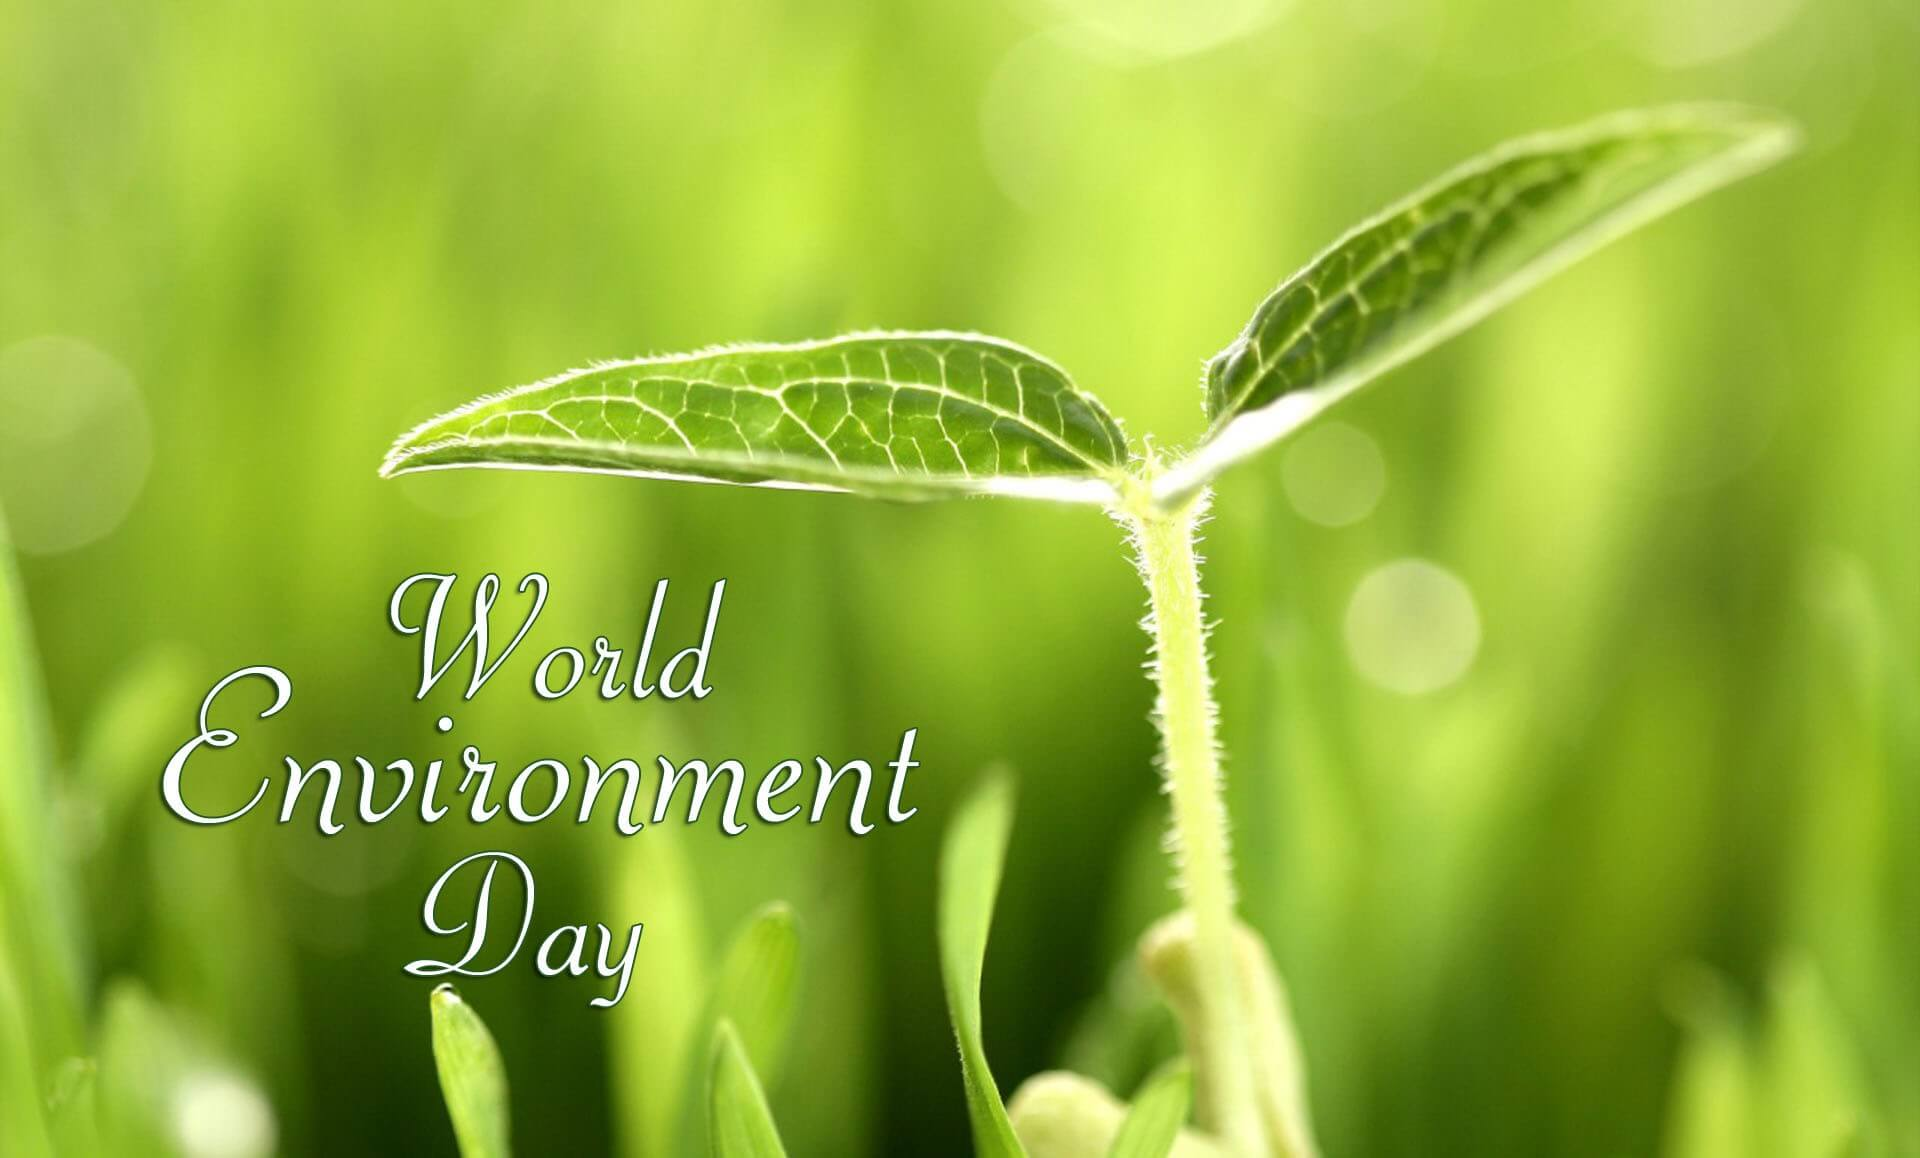 world environment day protect plants trees hd